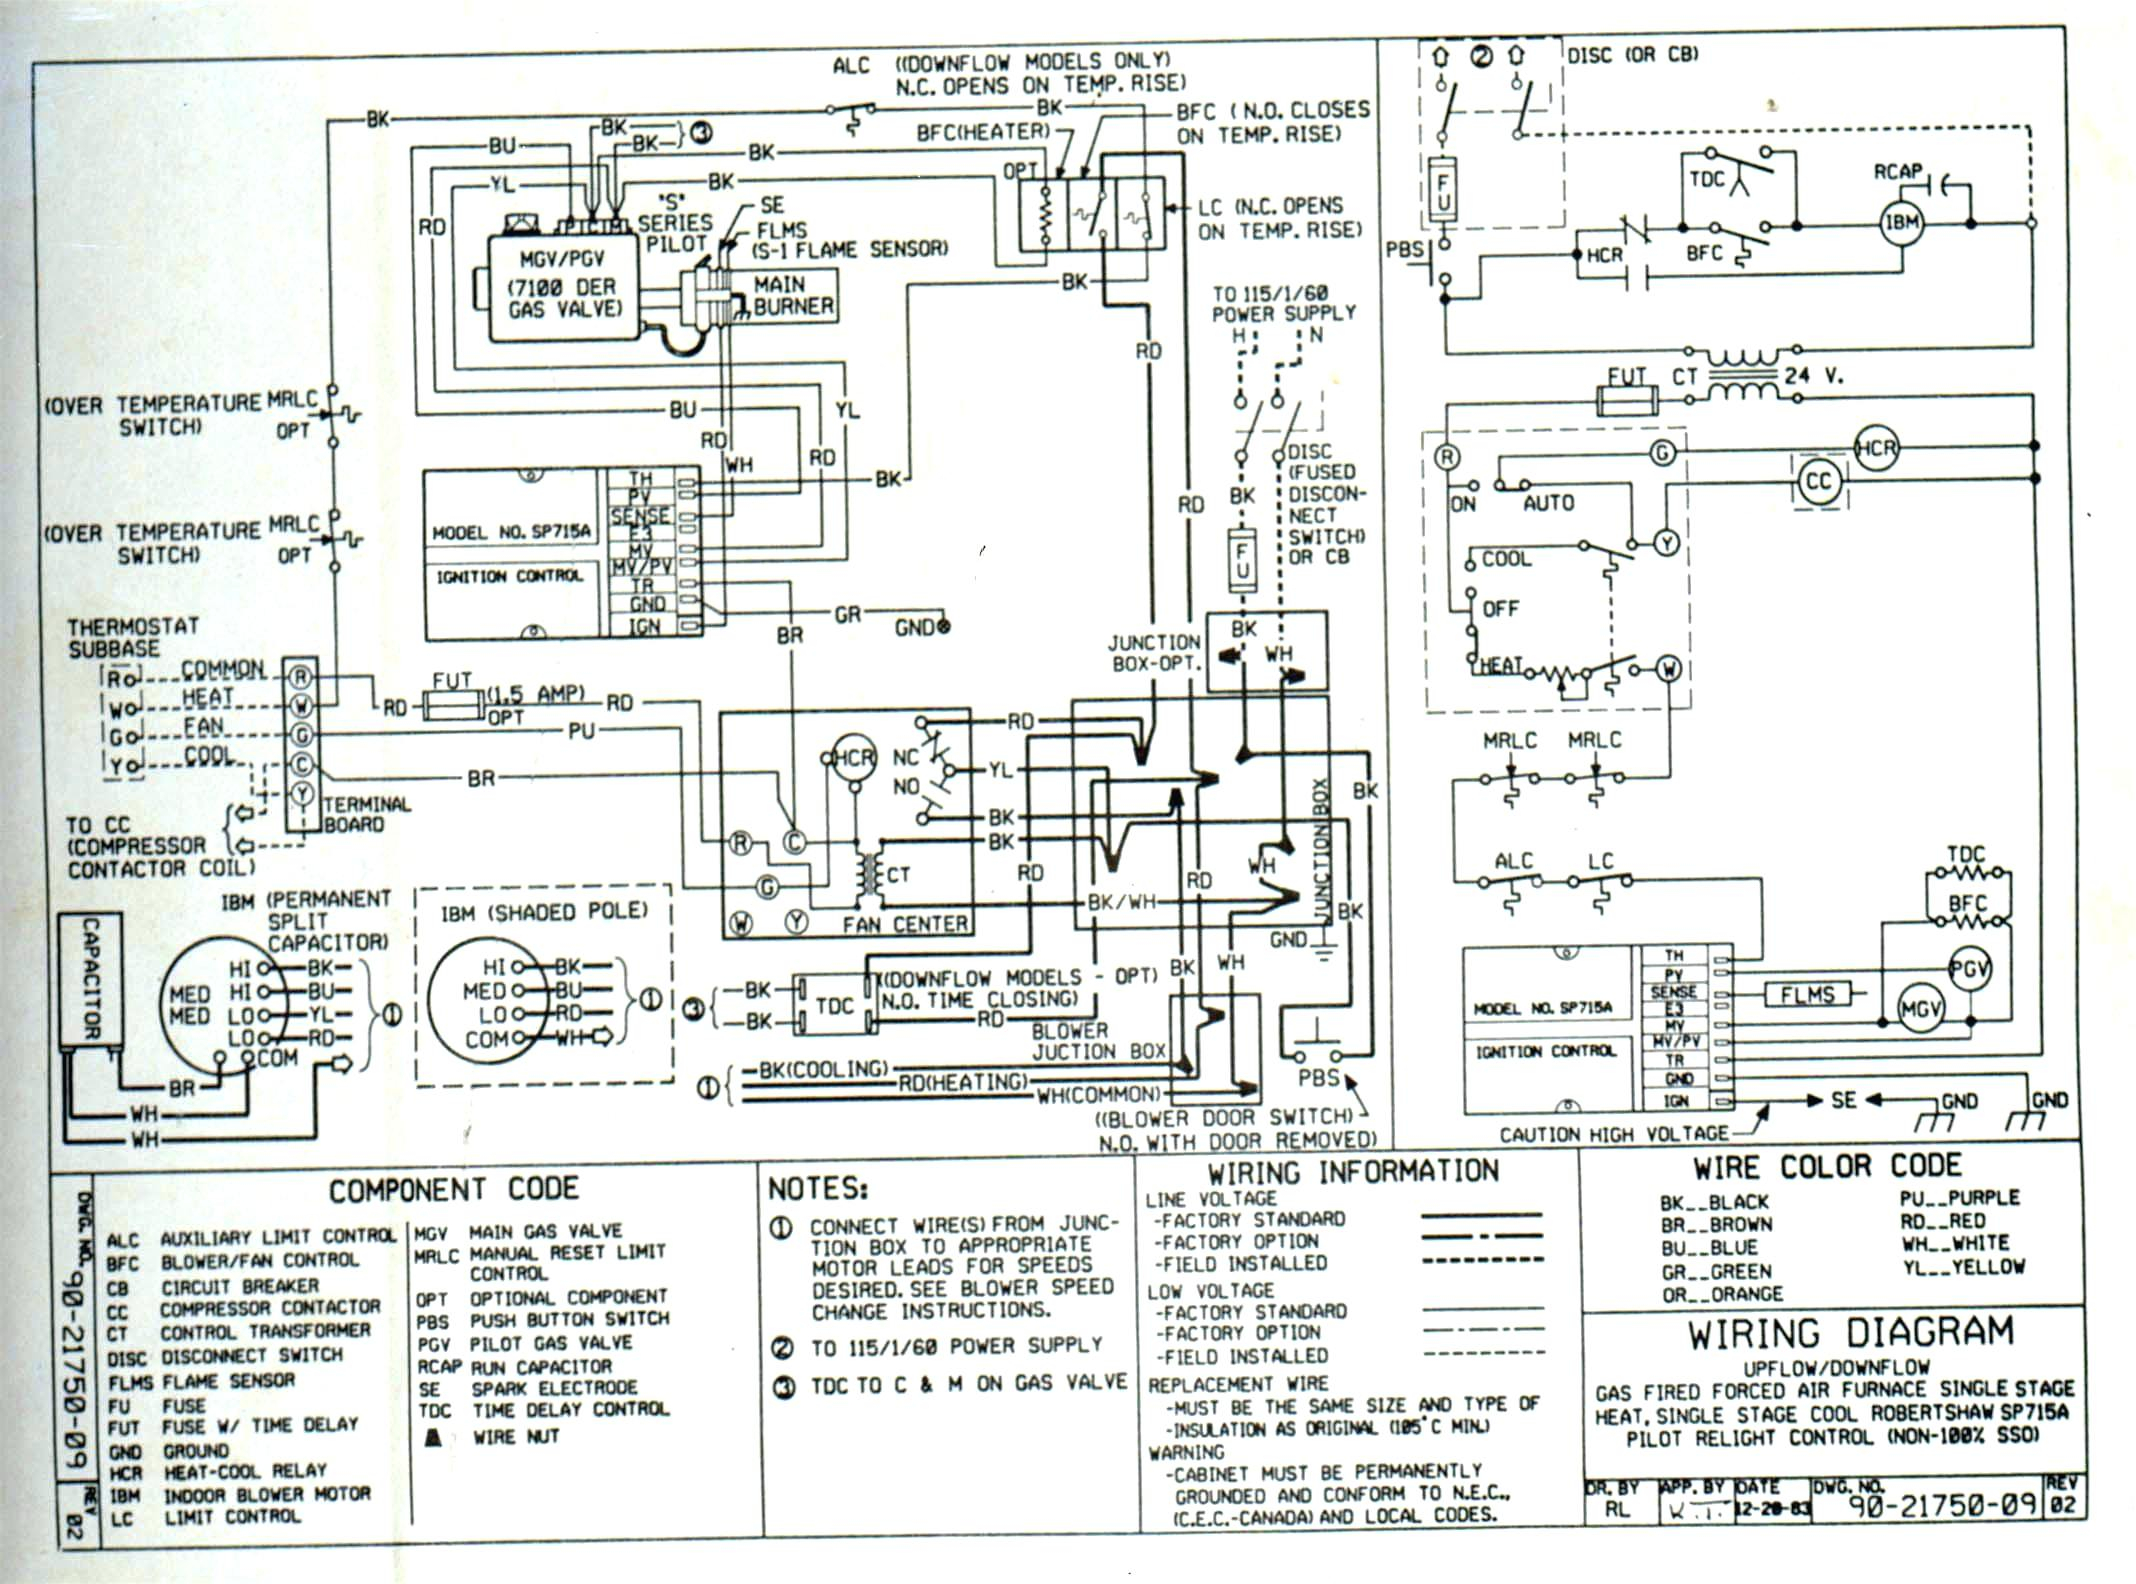 advent wiring diagram carrier package unit wiring diagram diagram base website wiring  carrier package unit wiring diagram